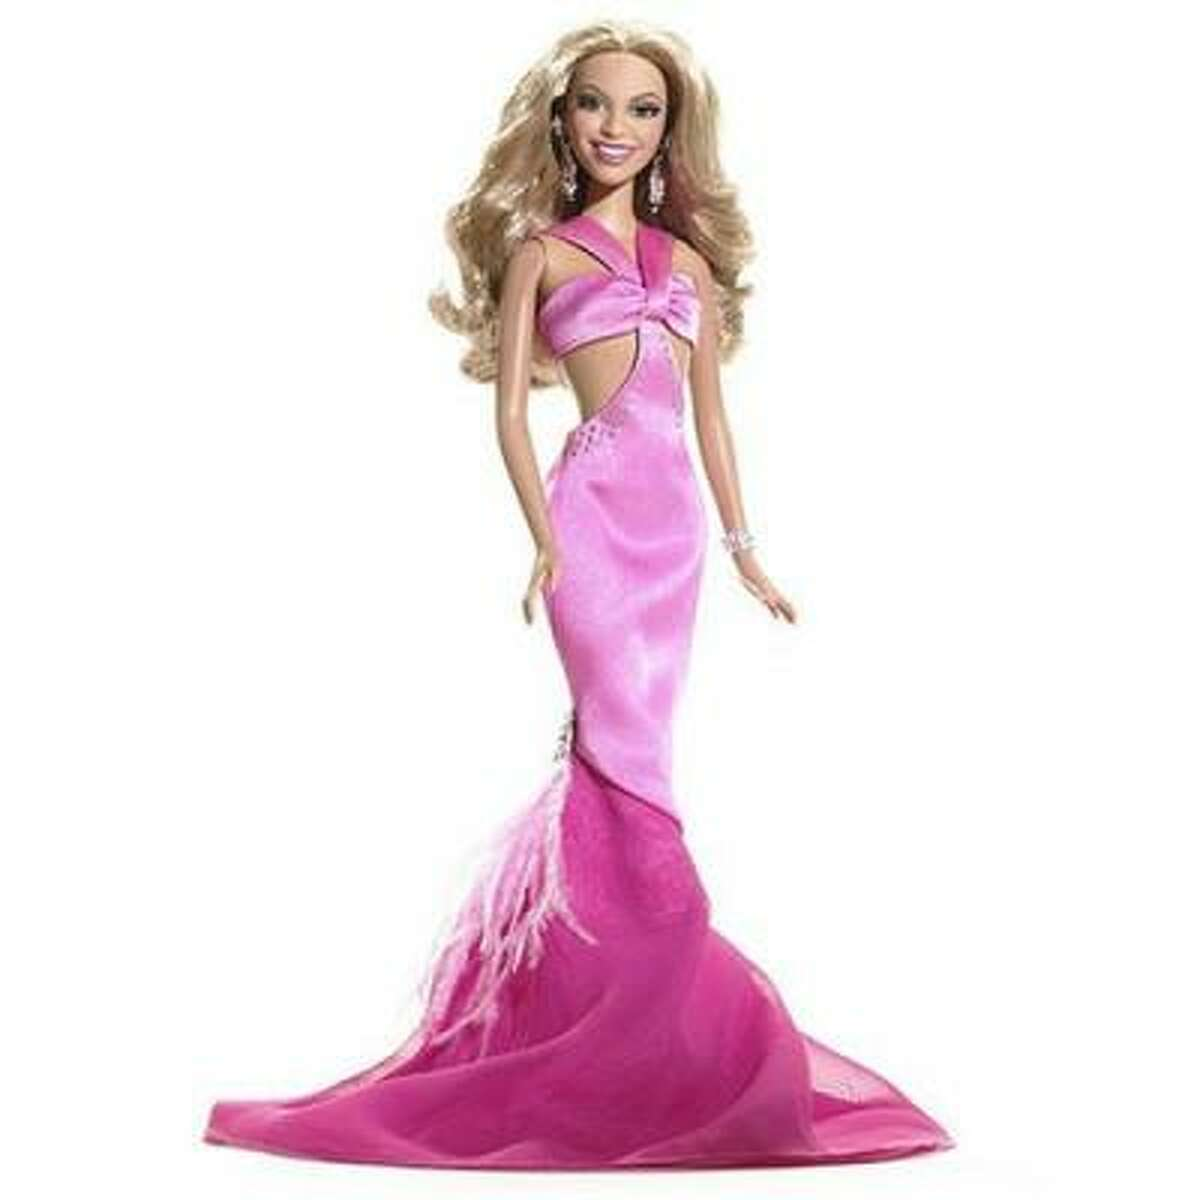 Beyonce from her Destiny's-Child-days Barbie. Who knew one day she'd have the best video of the decade, according to Kanye West.